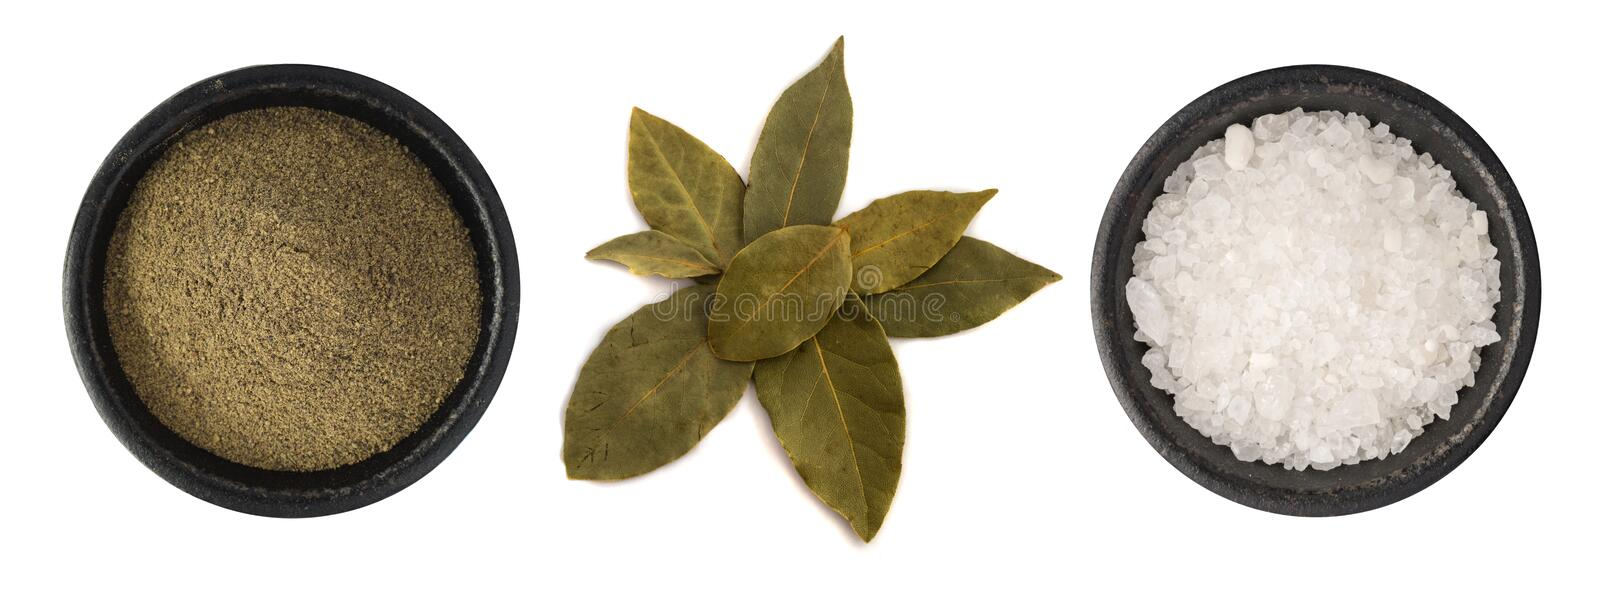 Group of Ground Black Pepper, Salt and Bay Leaves Isolated. On White Background Top View stock photography